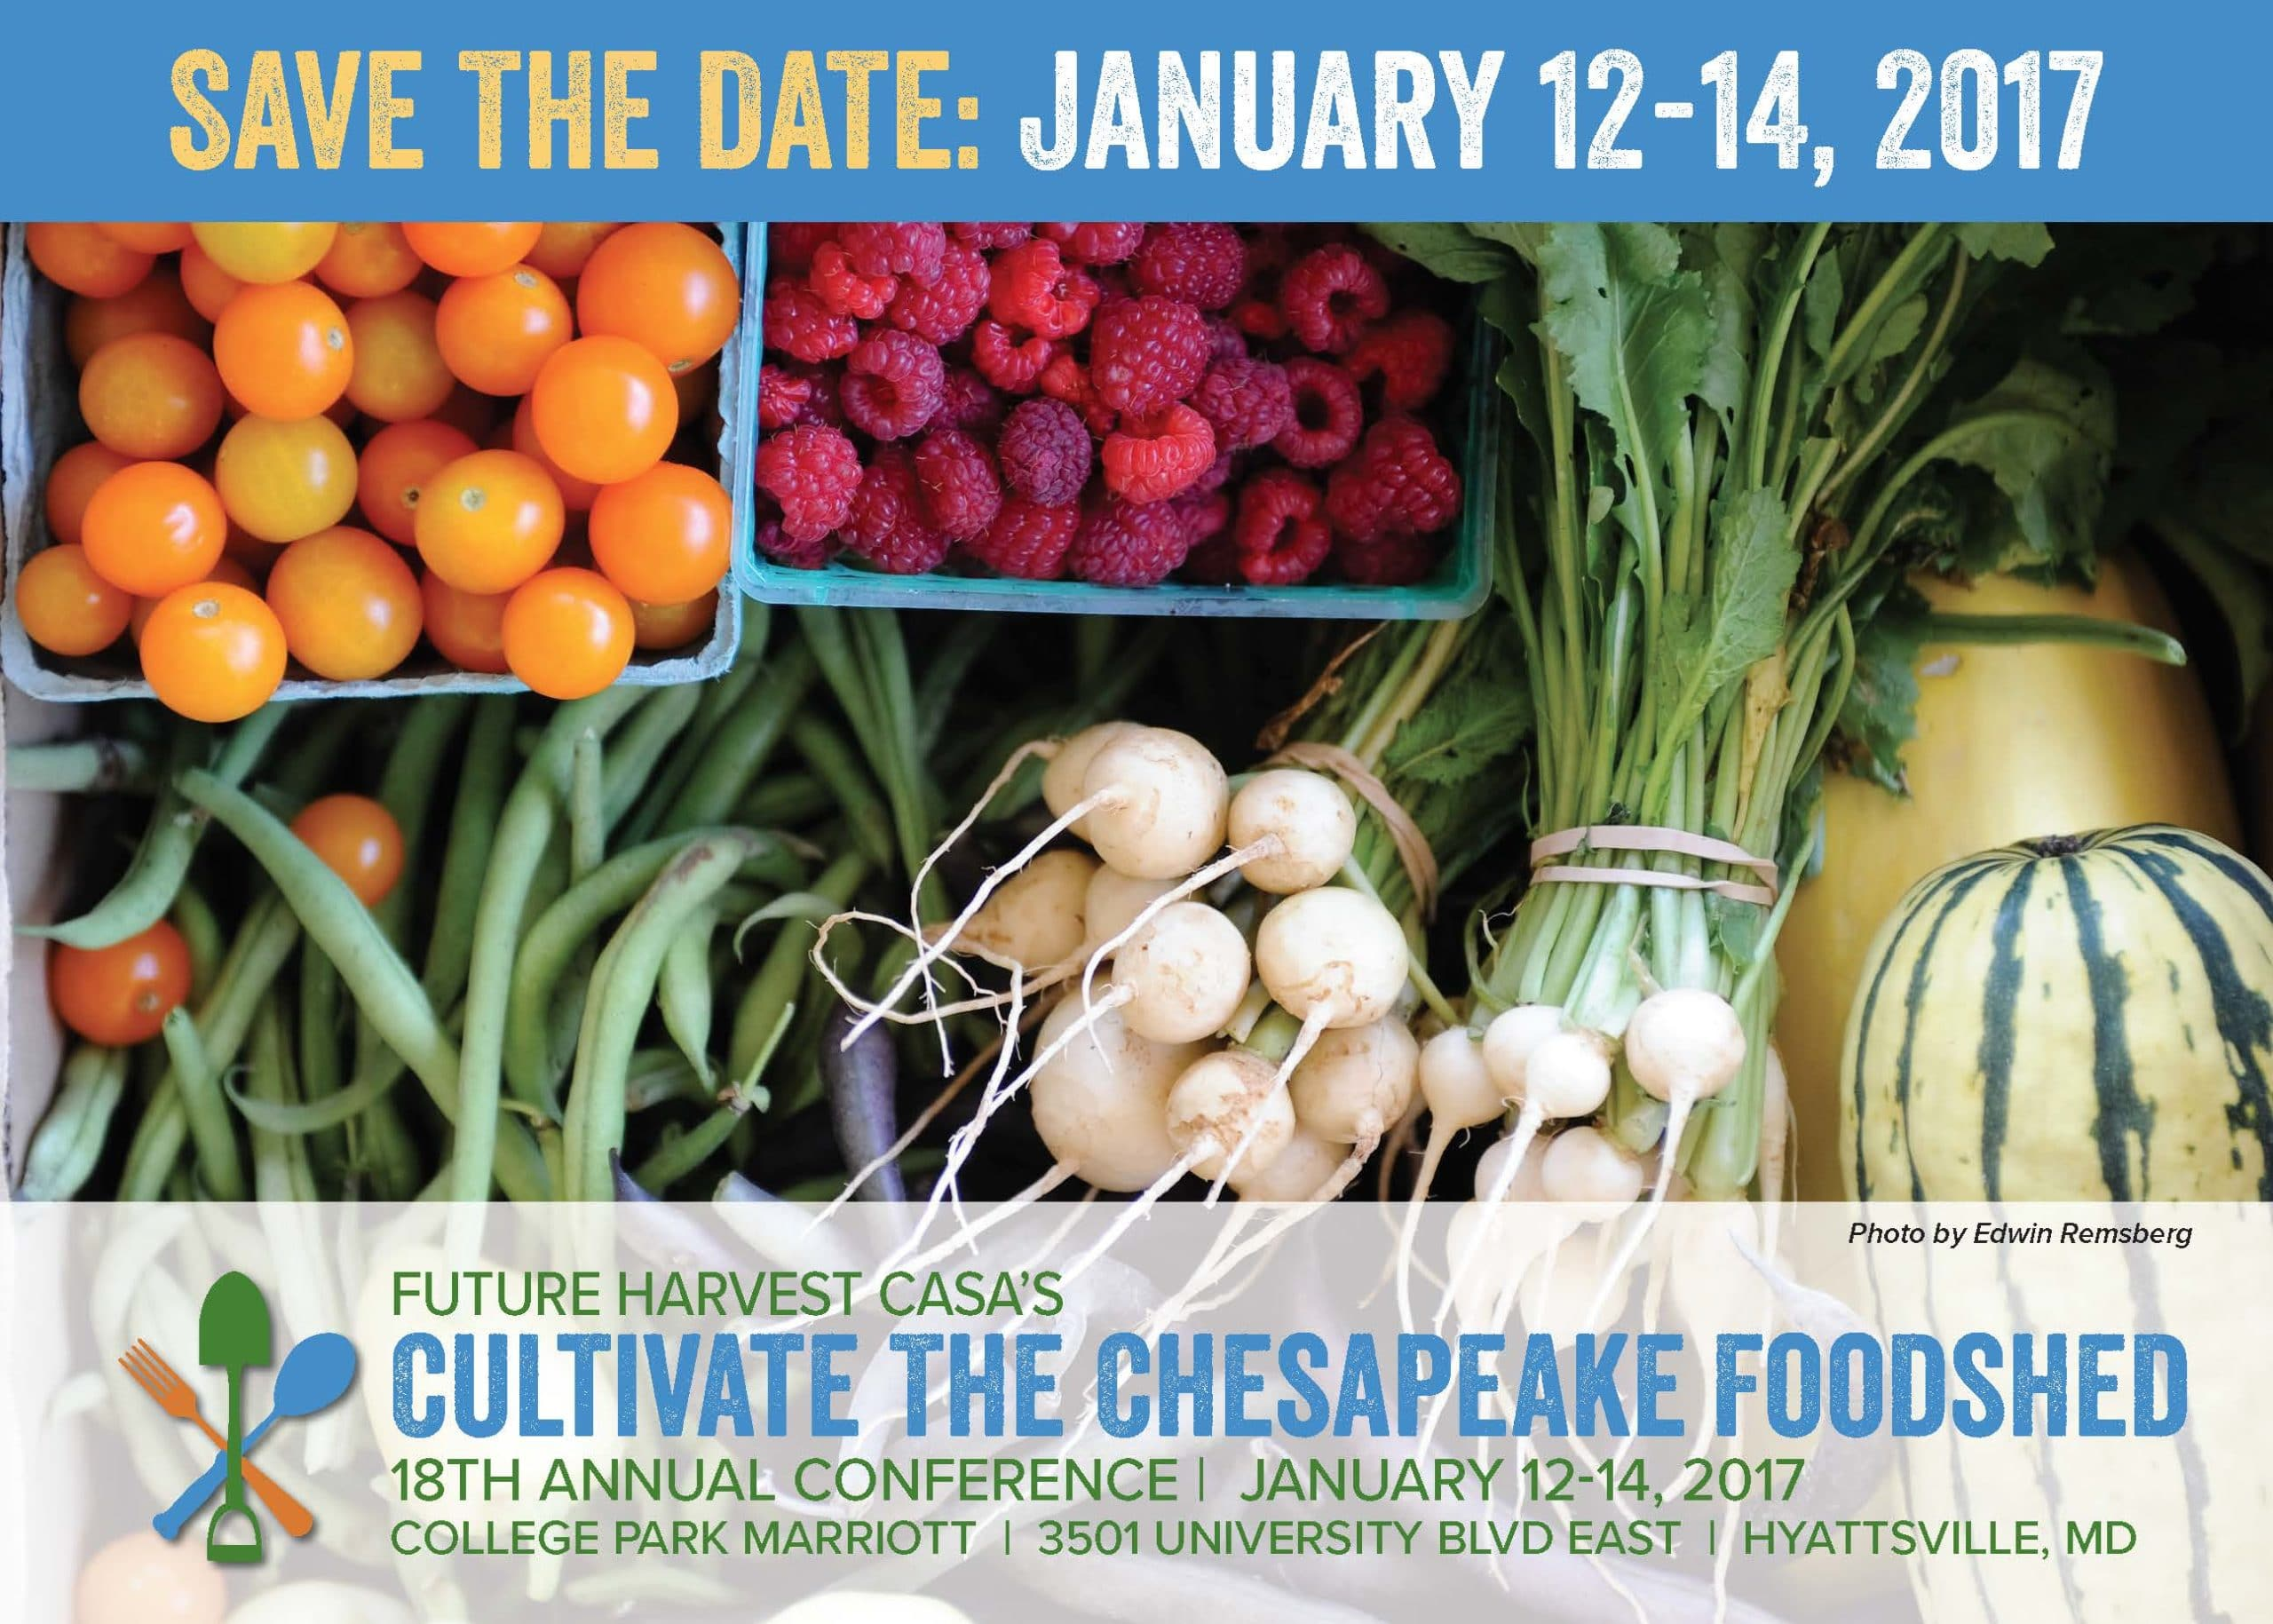 logo for Future Harvest CASA's Cultivate the Chesapeake Foodshed Conference!